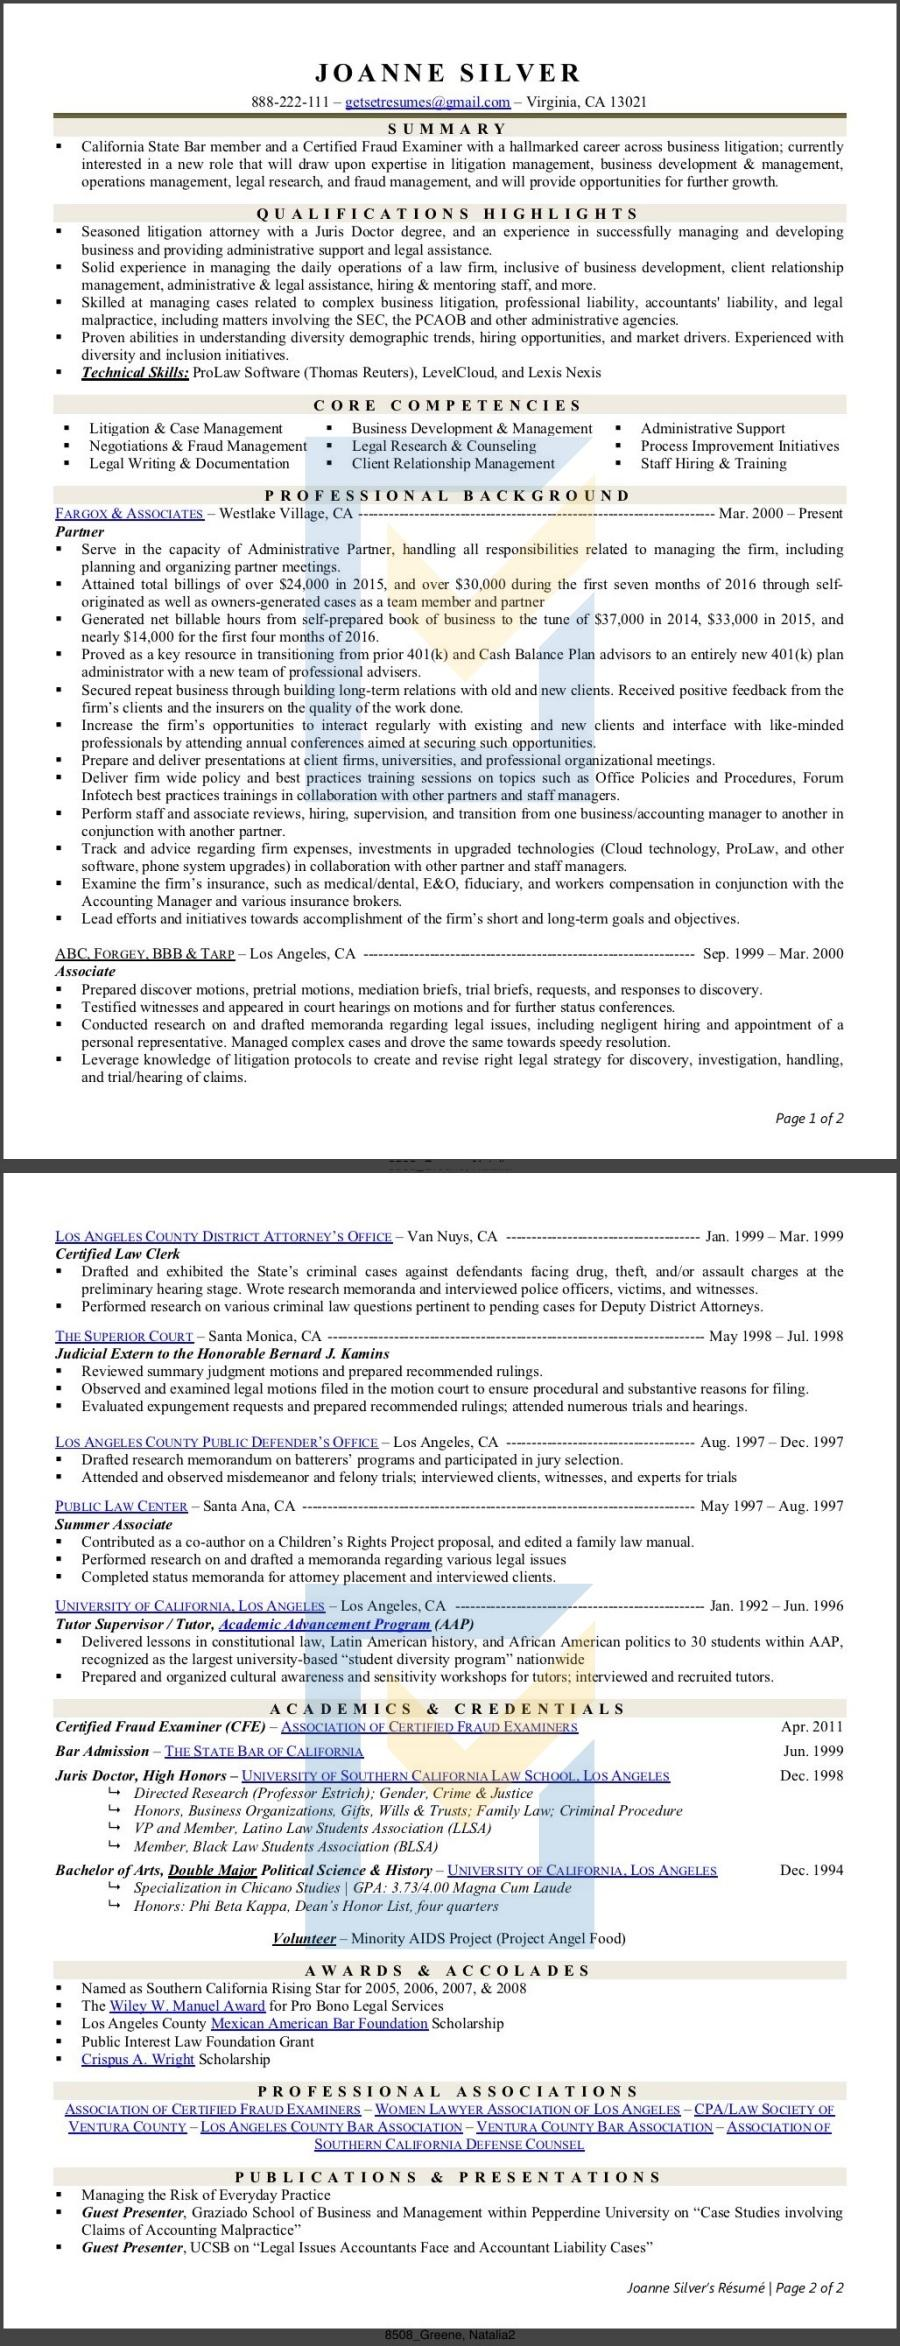 Resume of a Legal / Paralegal / Litigator / Advocate / Lawyer